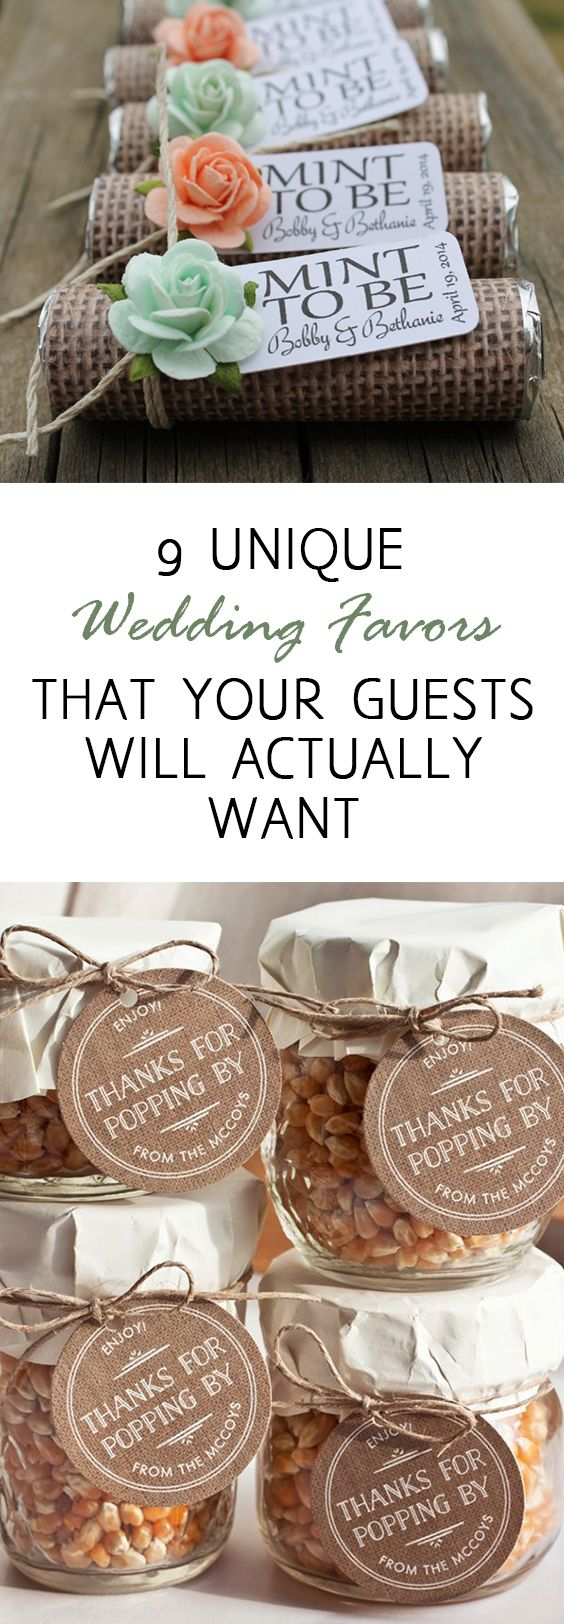 9 Unique Wedding Favors That Your Guests Will Actually Want